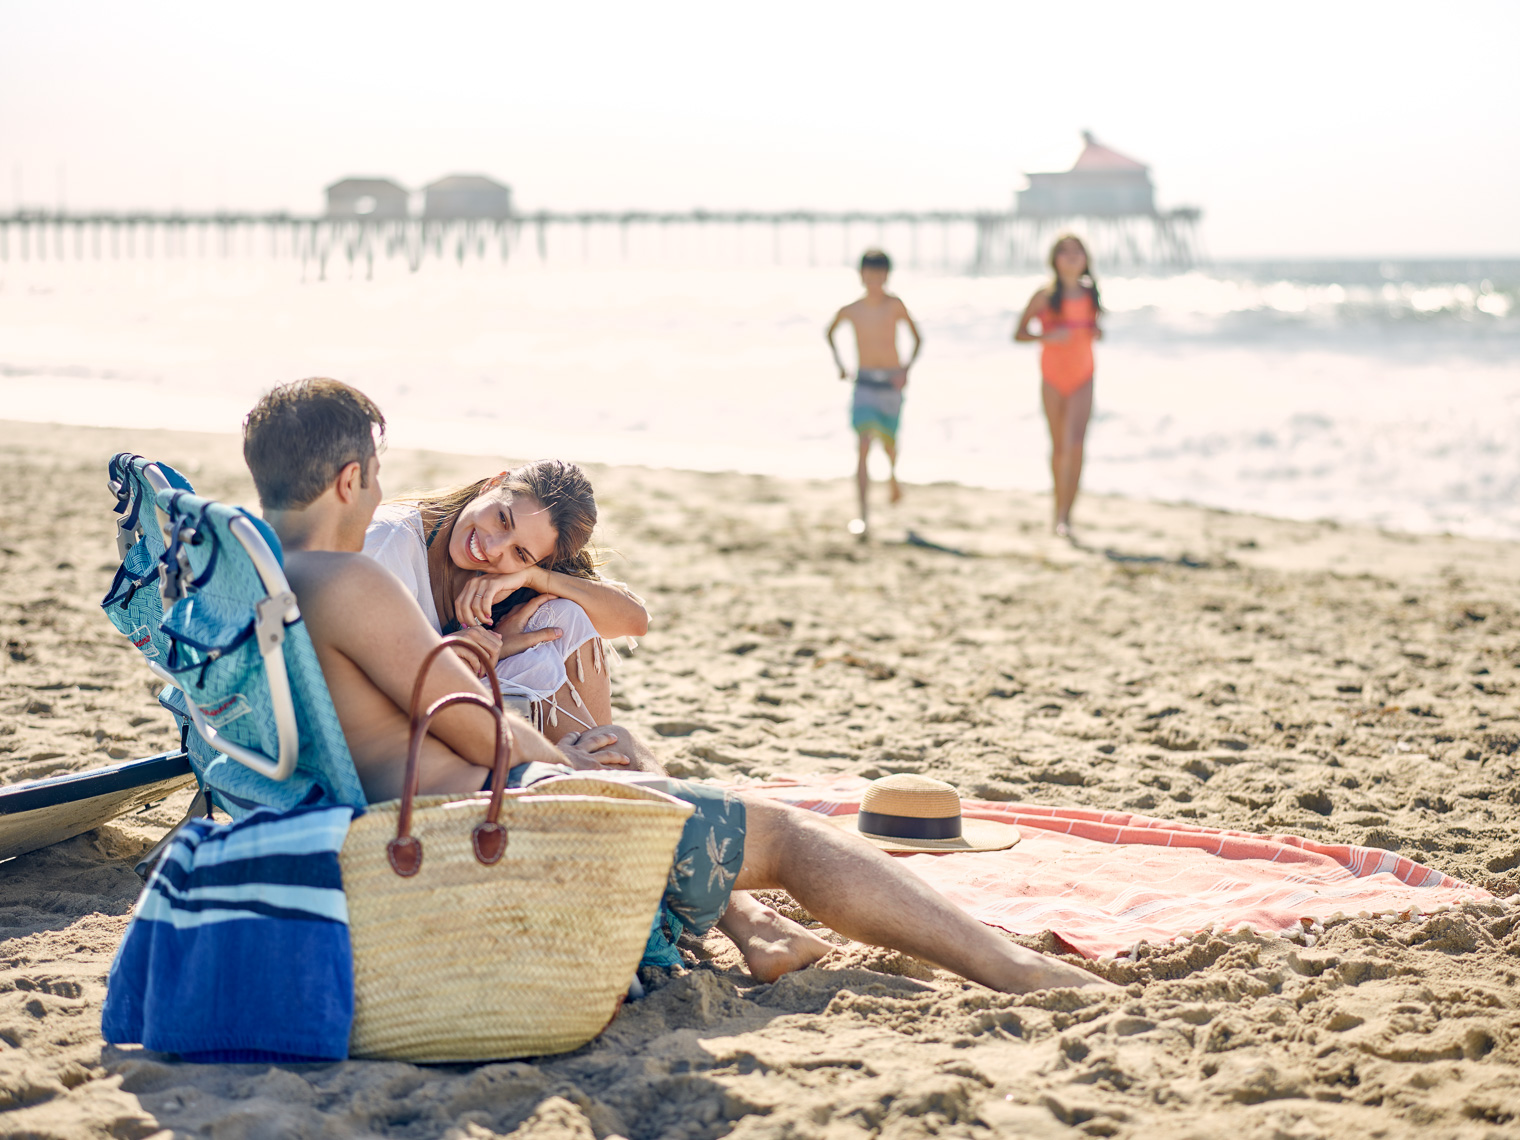 Kevin Steele - A family enjoys the California beach